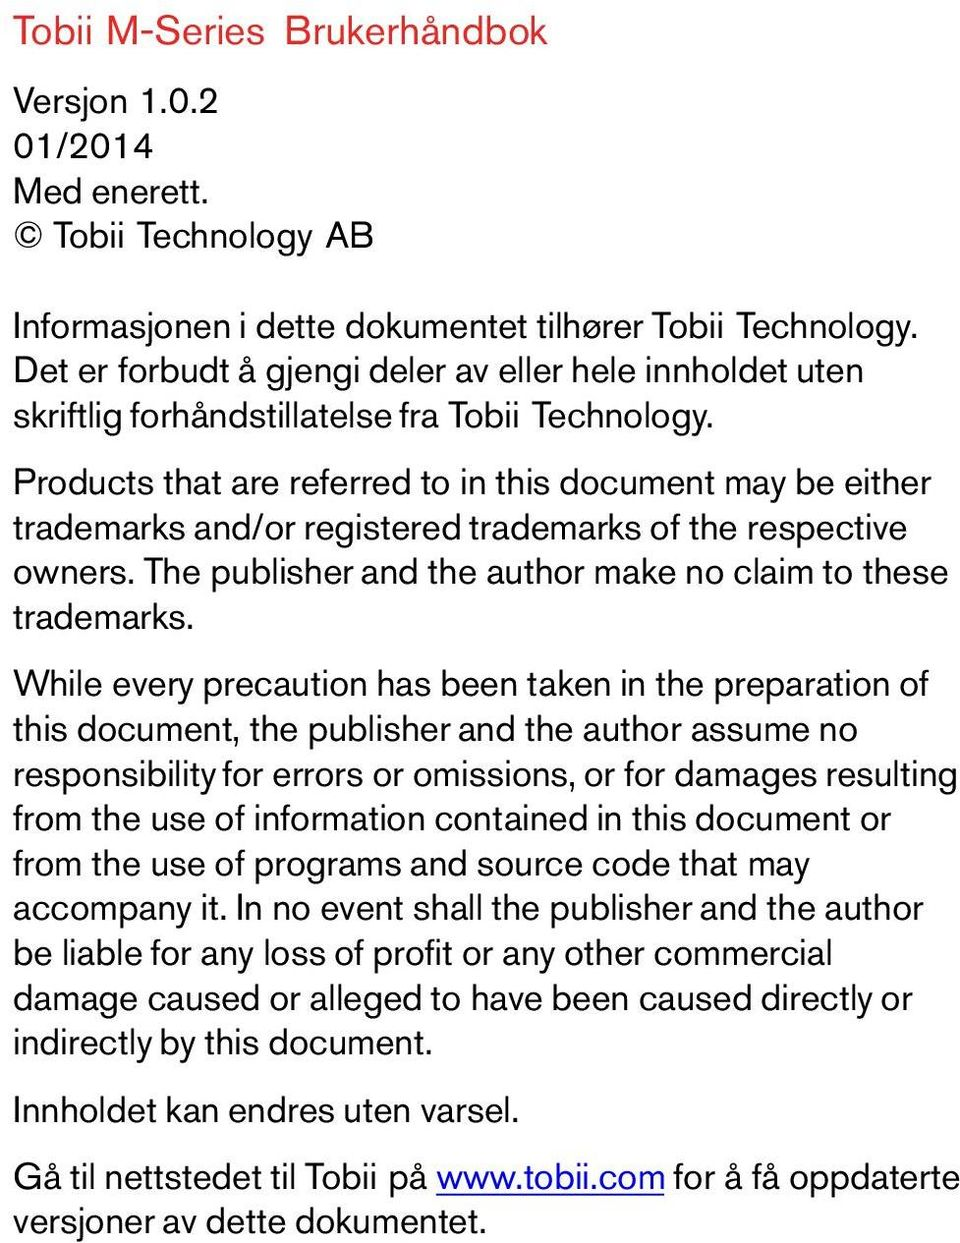 Productsthatarereferredto inthisdocumentmaybeeither trademarks and/or registered trademarks of the respective owners.the publisherandthe authormakenoclaimtothese trademarks.